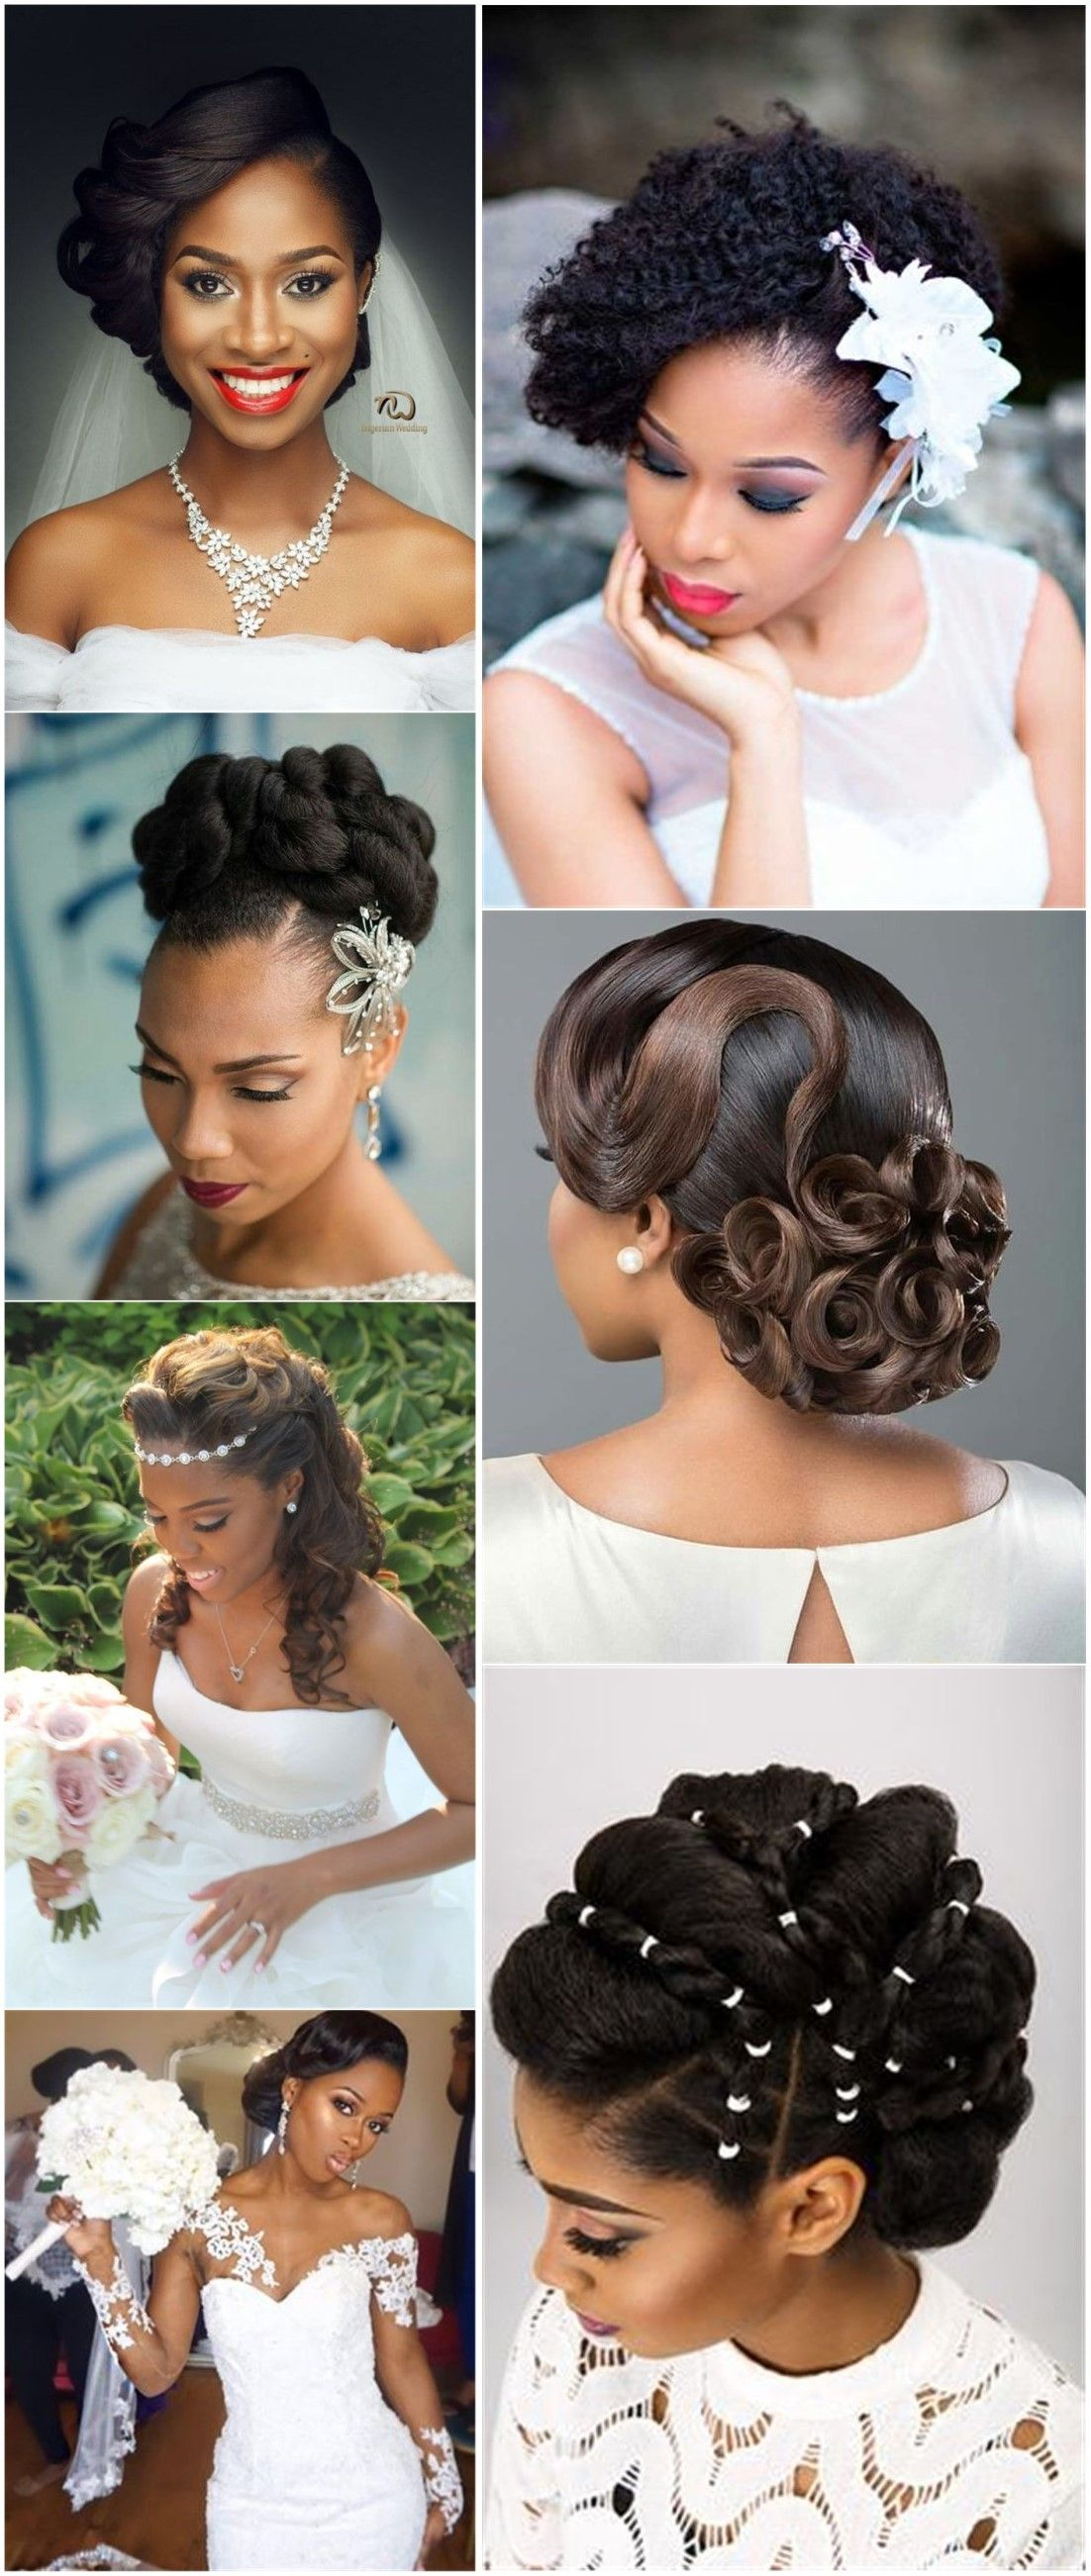 20 Wedding Updo Hairstyles for Black Brides   Braided hairstyles ...